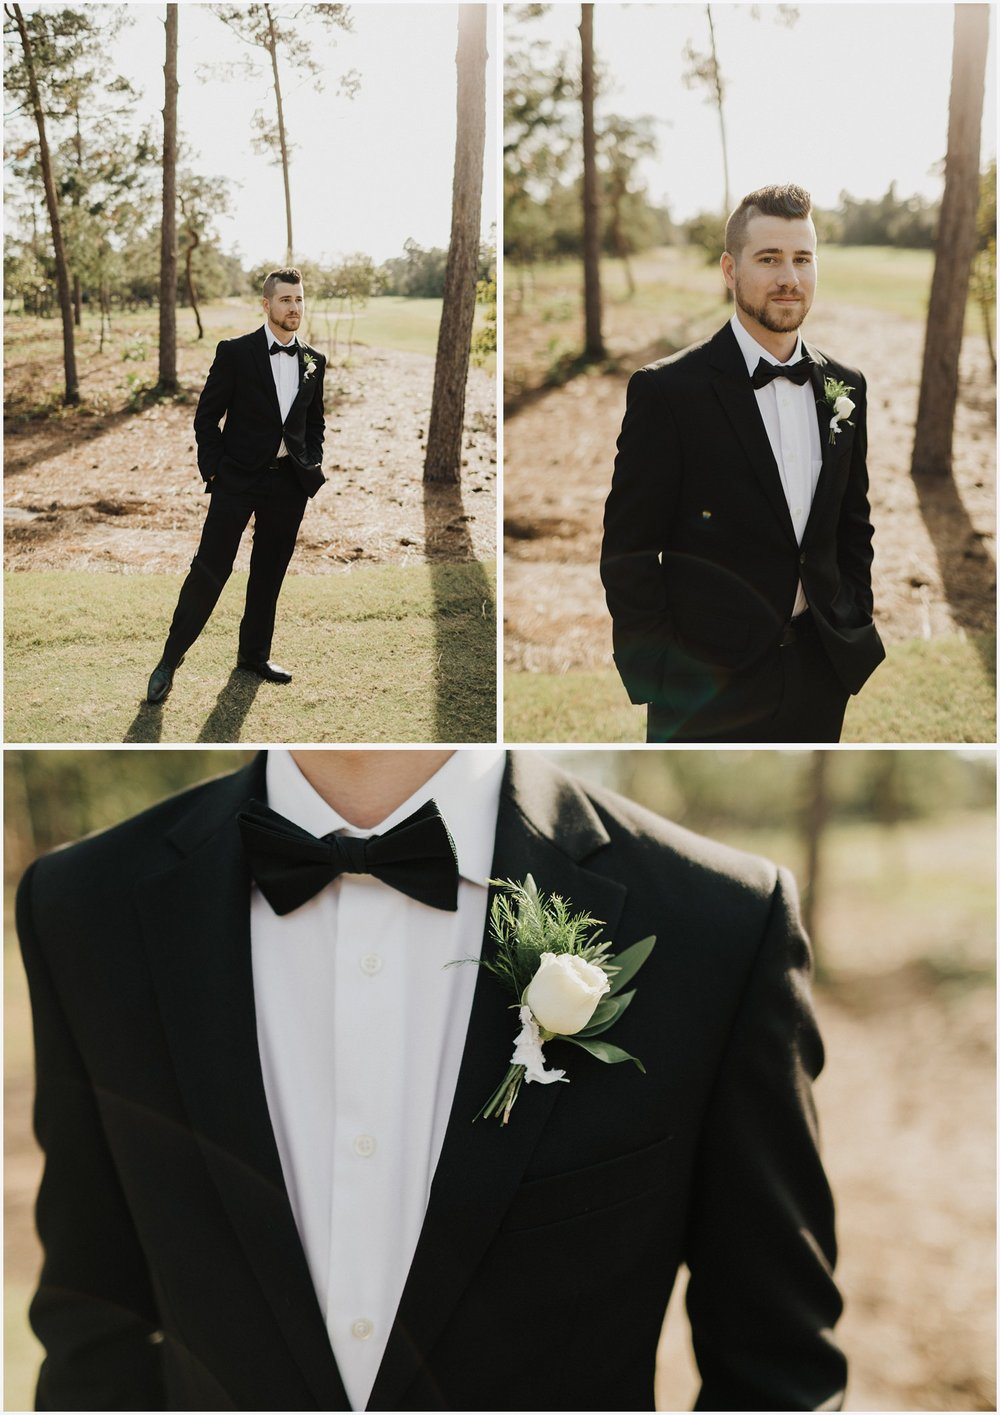 Groom's portraits at his Shark's Tooth Golf Club wedding